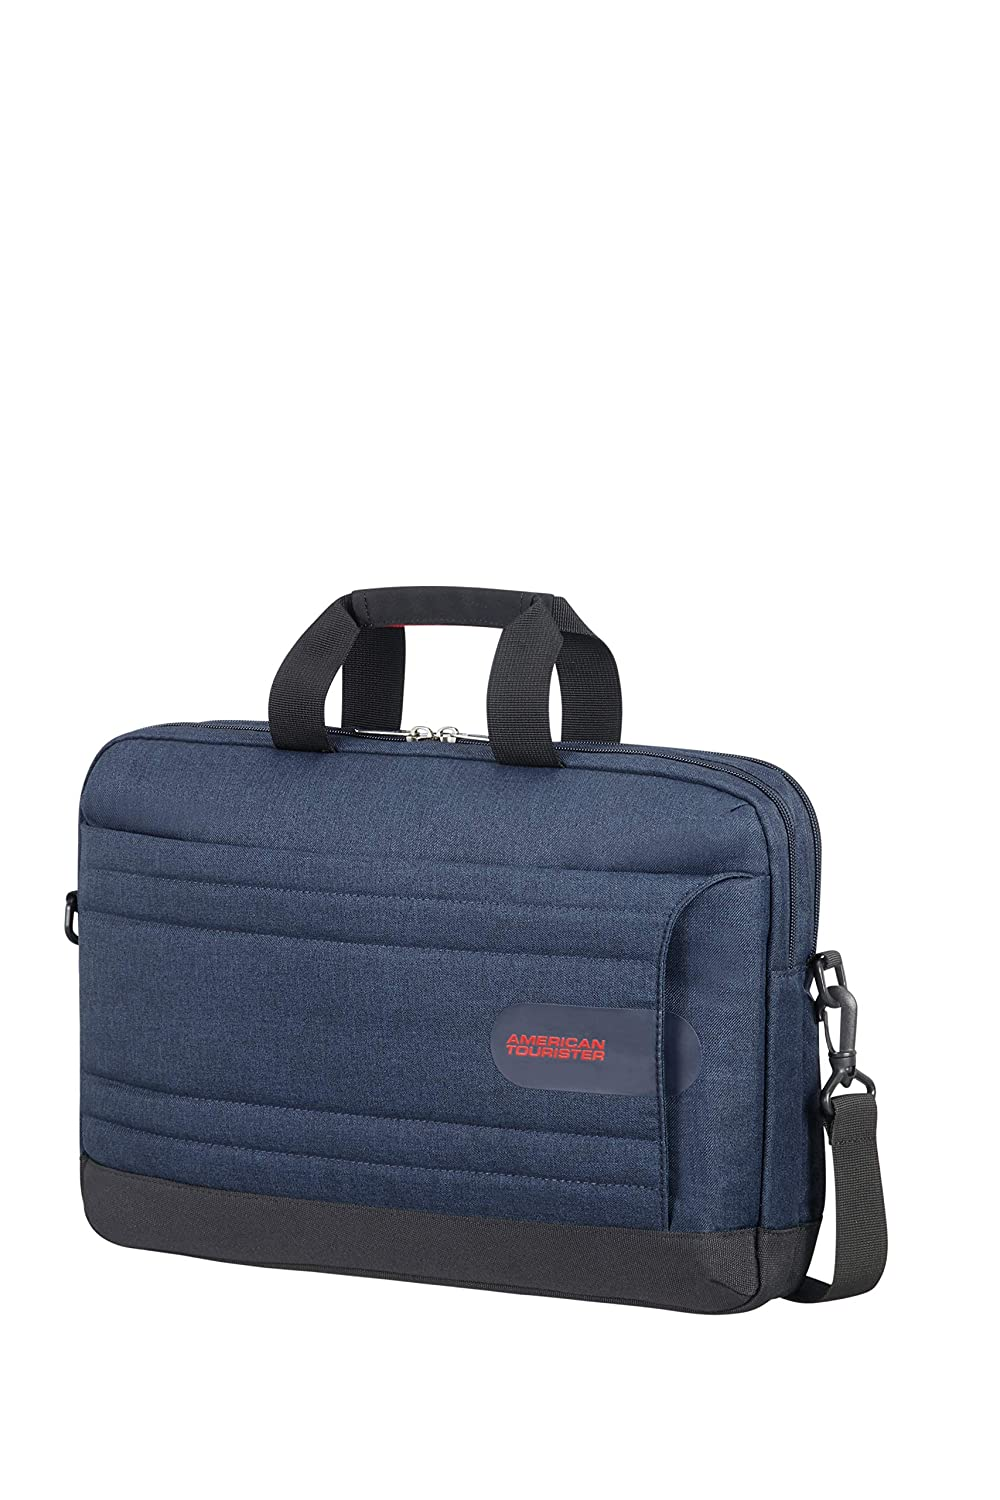 American Tourister Sonicsurfer - Laptop Briefcase 15.6 Mallette, 44 cm, 15 liters, Bleu (Midnight Navy) 103026/1552